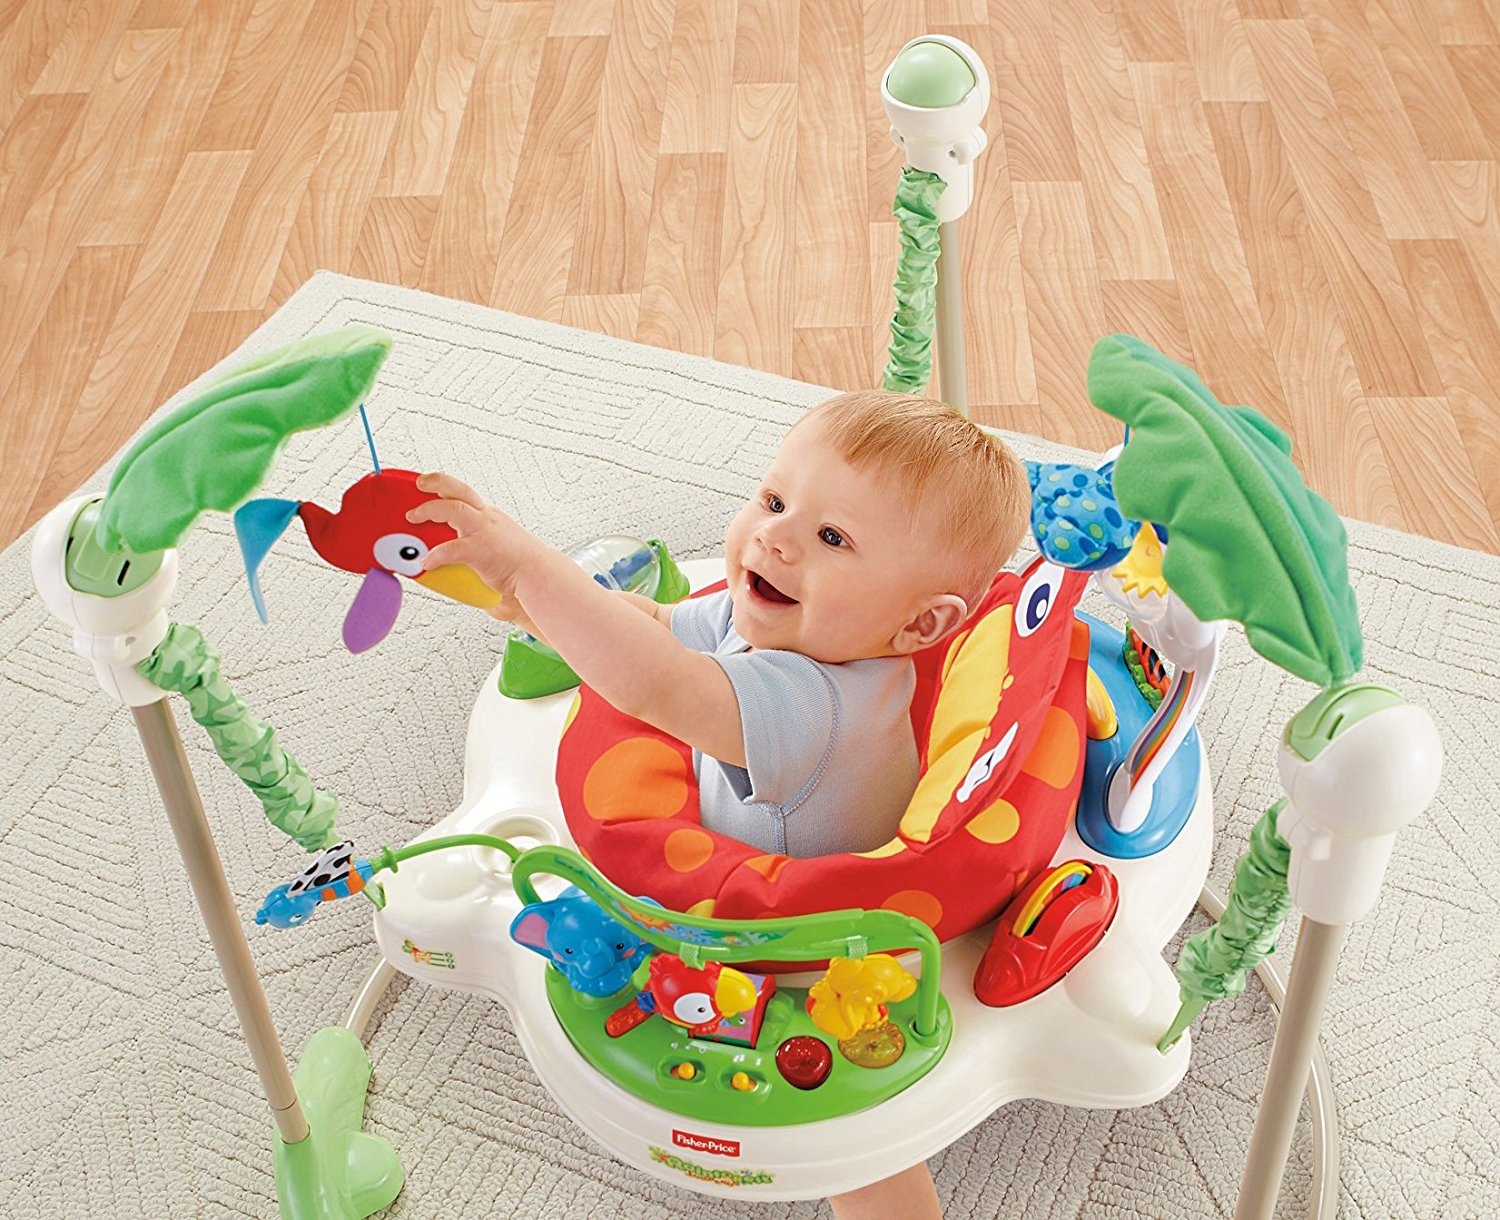 b826b17da The Benefits of a Jumperoo for your baby  Tips and Guides